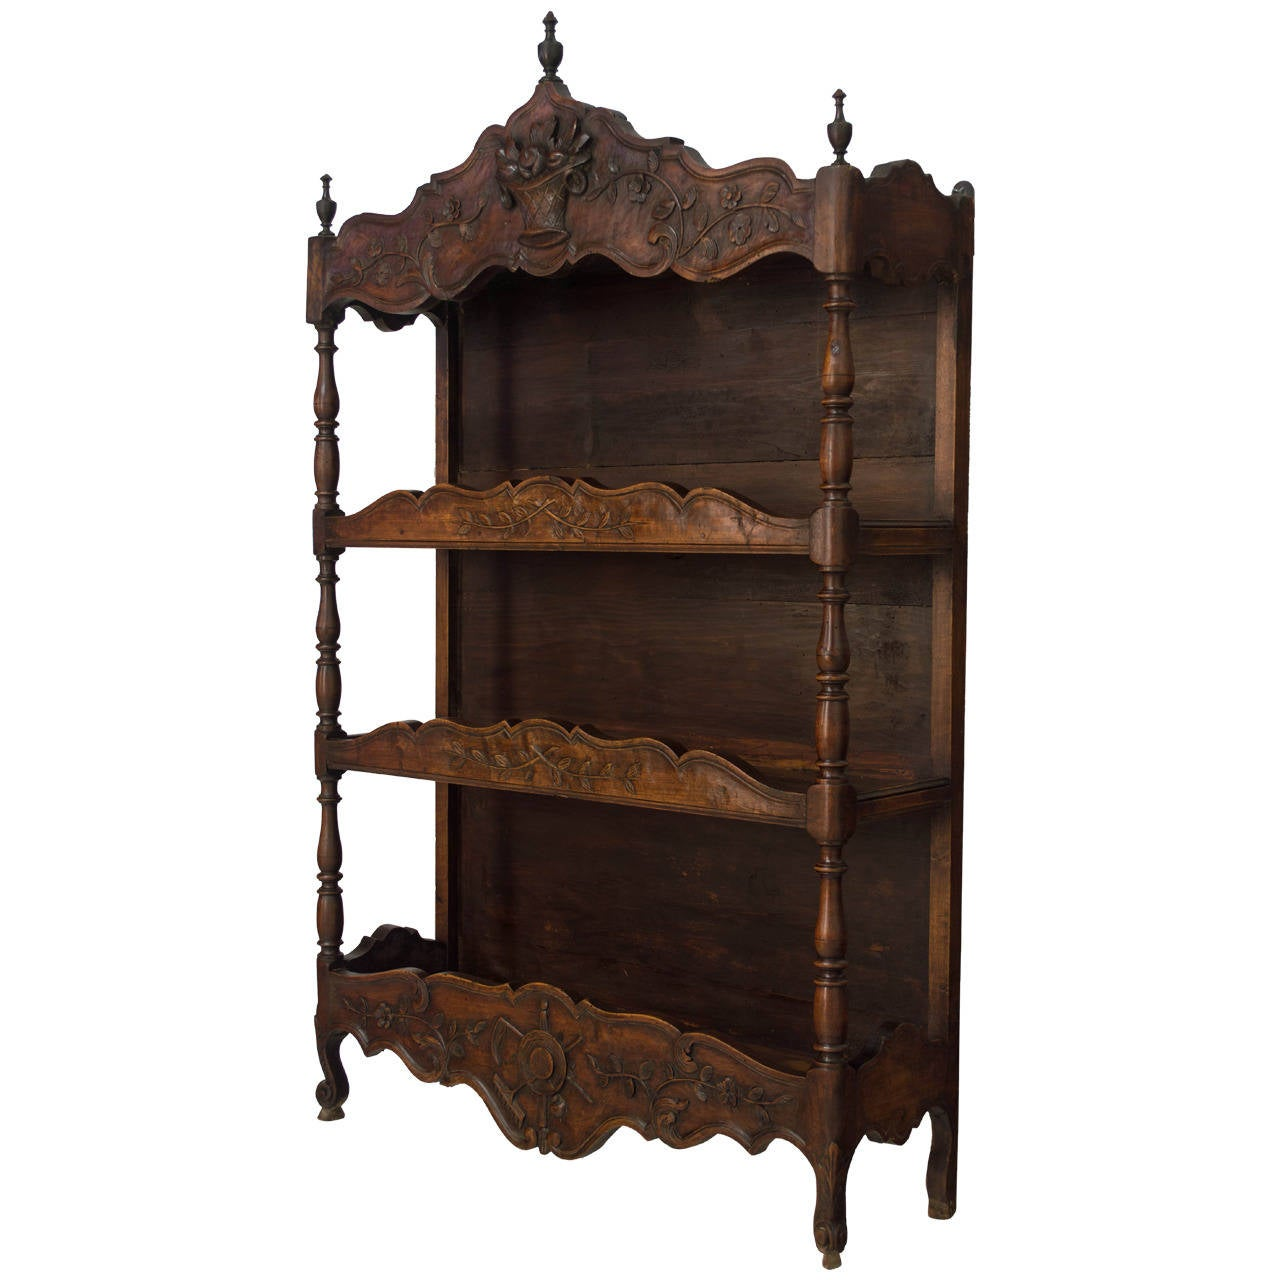 19th c french provencal shelf or estganier at 1stdibs for French country shelves